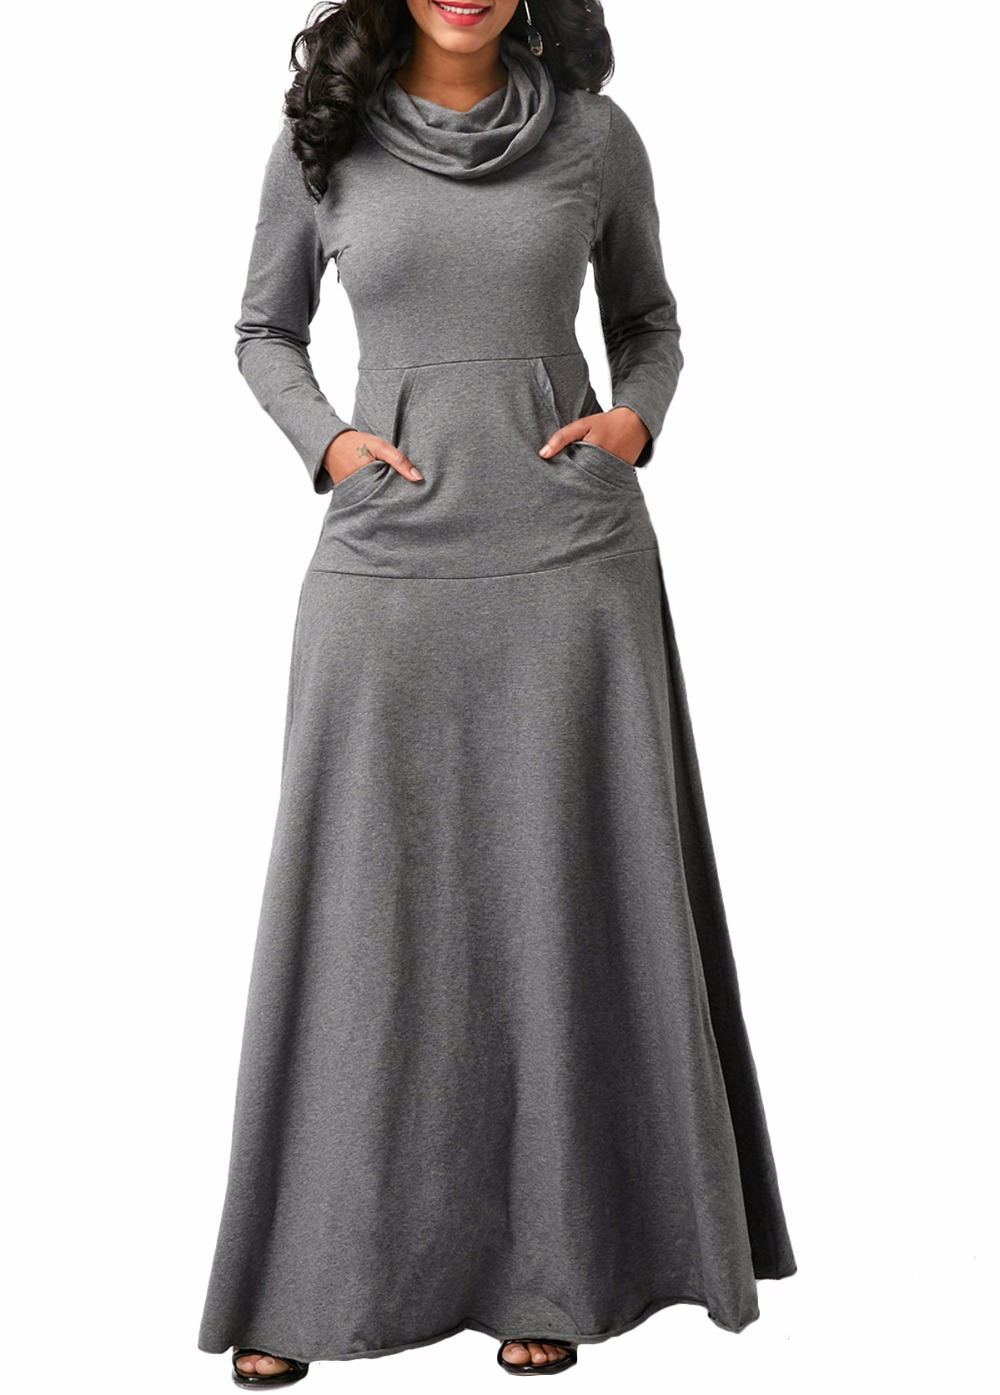 fddf7ad99f23 Women Solid Color Heaps Collar Cotton One Piece Dress New Pullover Long  Sleeve Pocket Full Length Party Dress Robe Female Vestid-in Dresses from  Women s ...